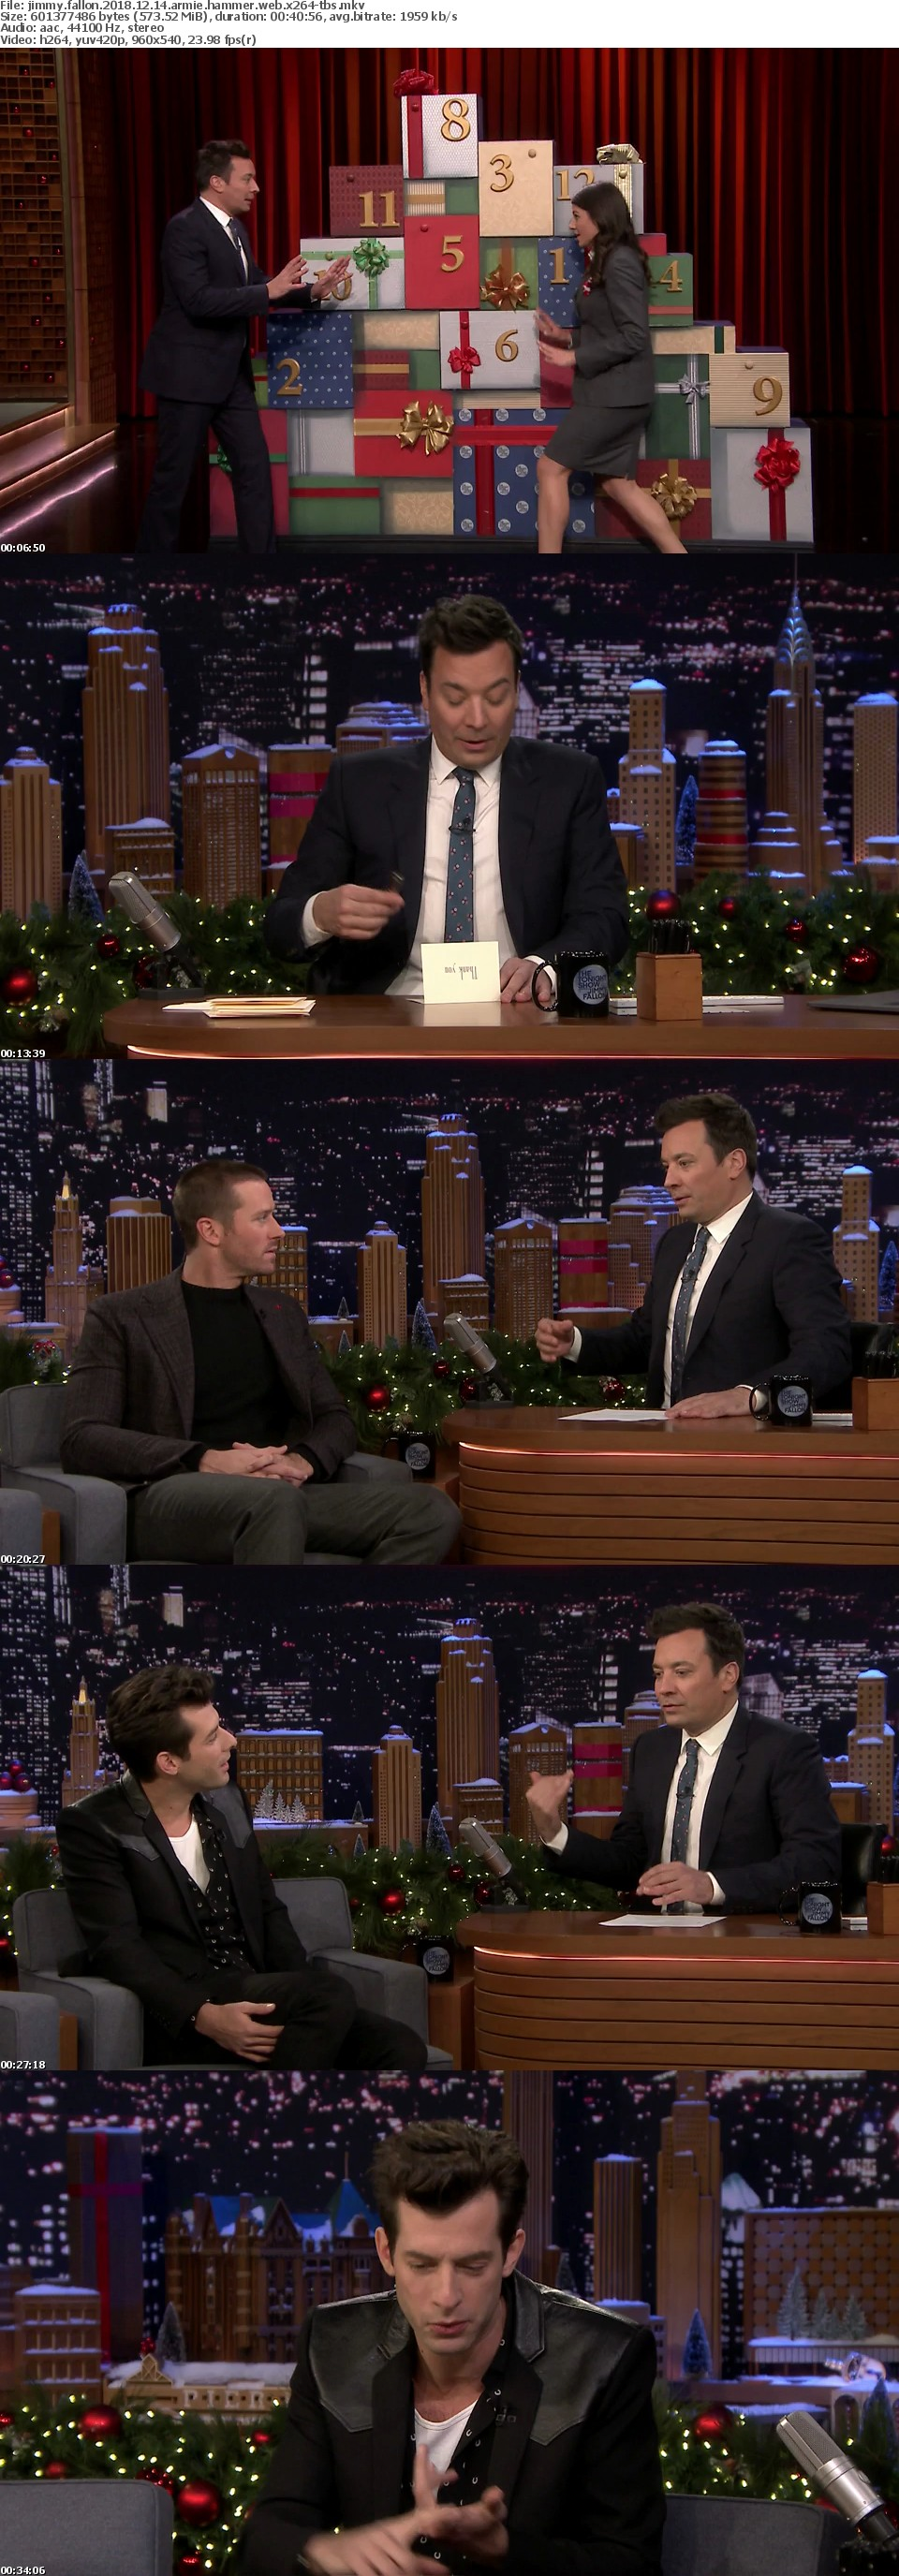 Jimmy Fallon 2018 12 14 Armie Hammer WEB x264-TBS